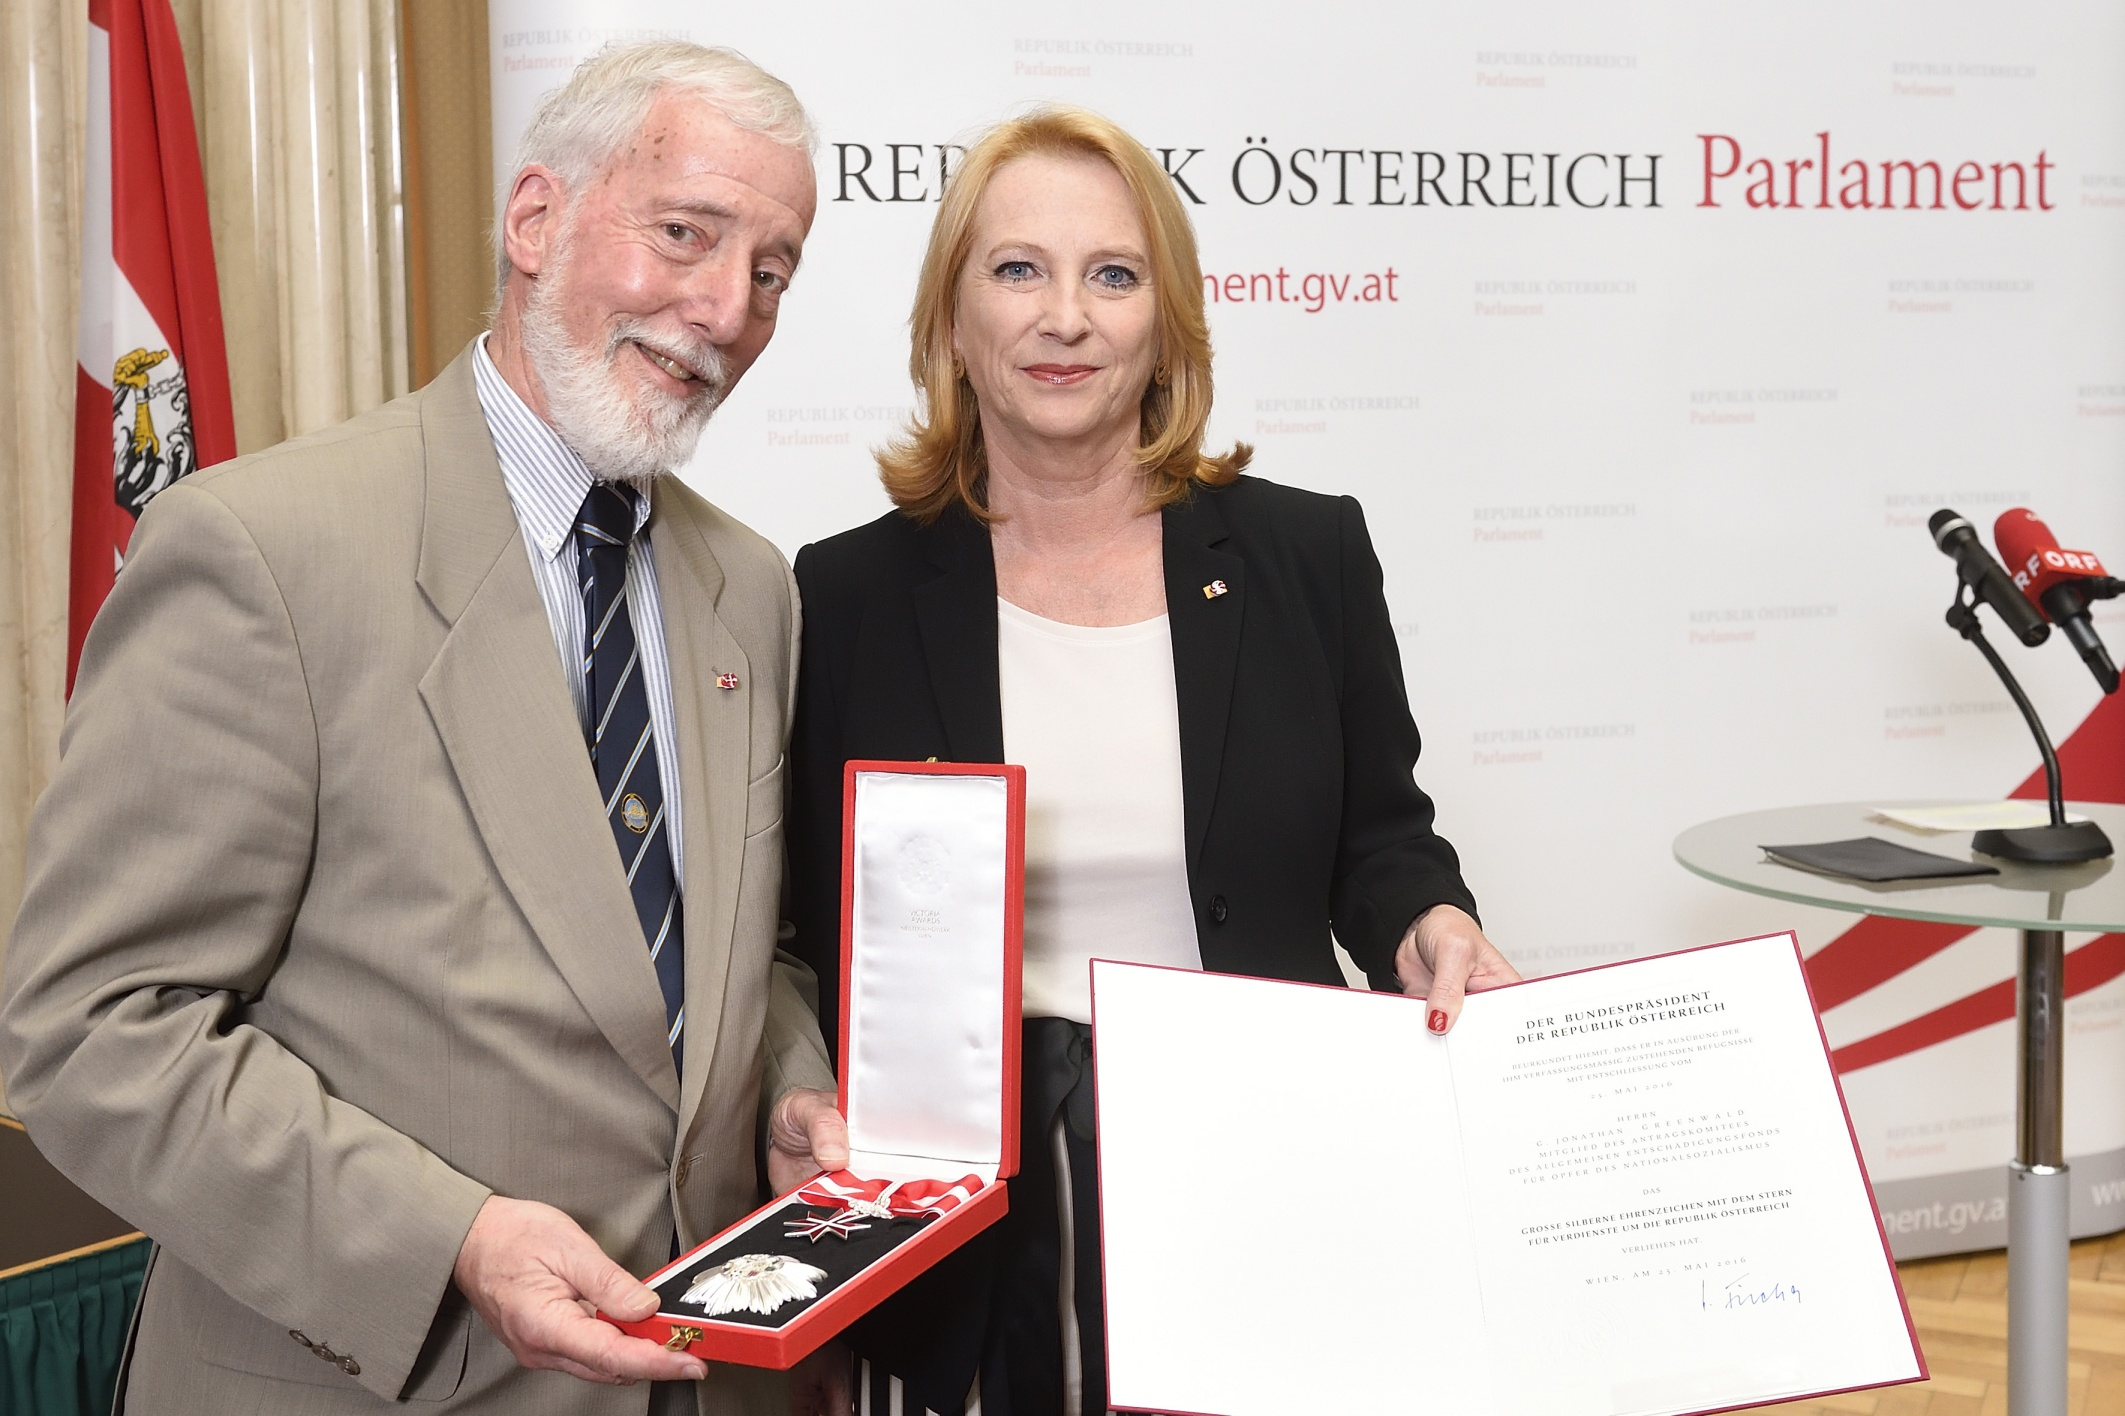 Reception in honor of the Claims Committee held at the Austrian Parliament on 4 April 2017